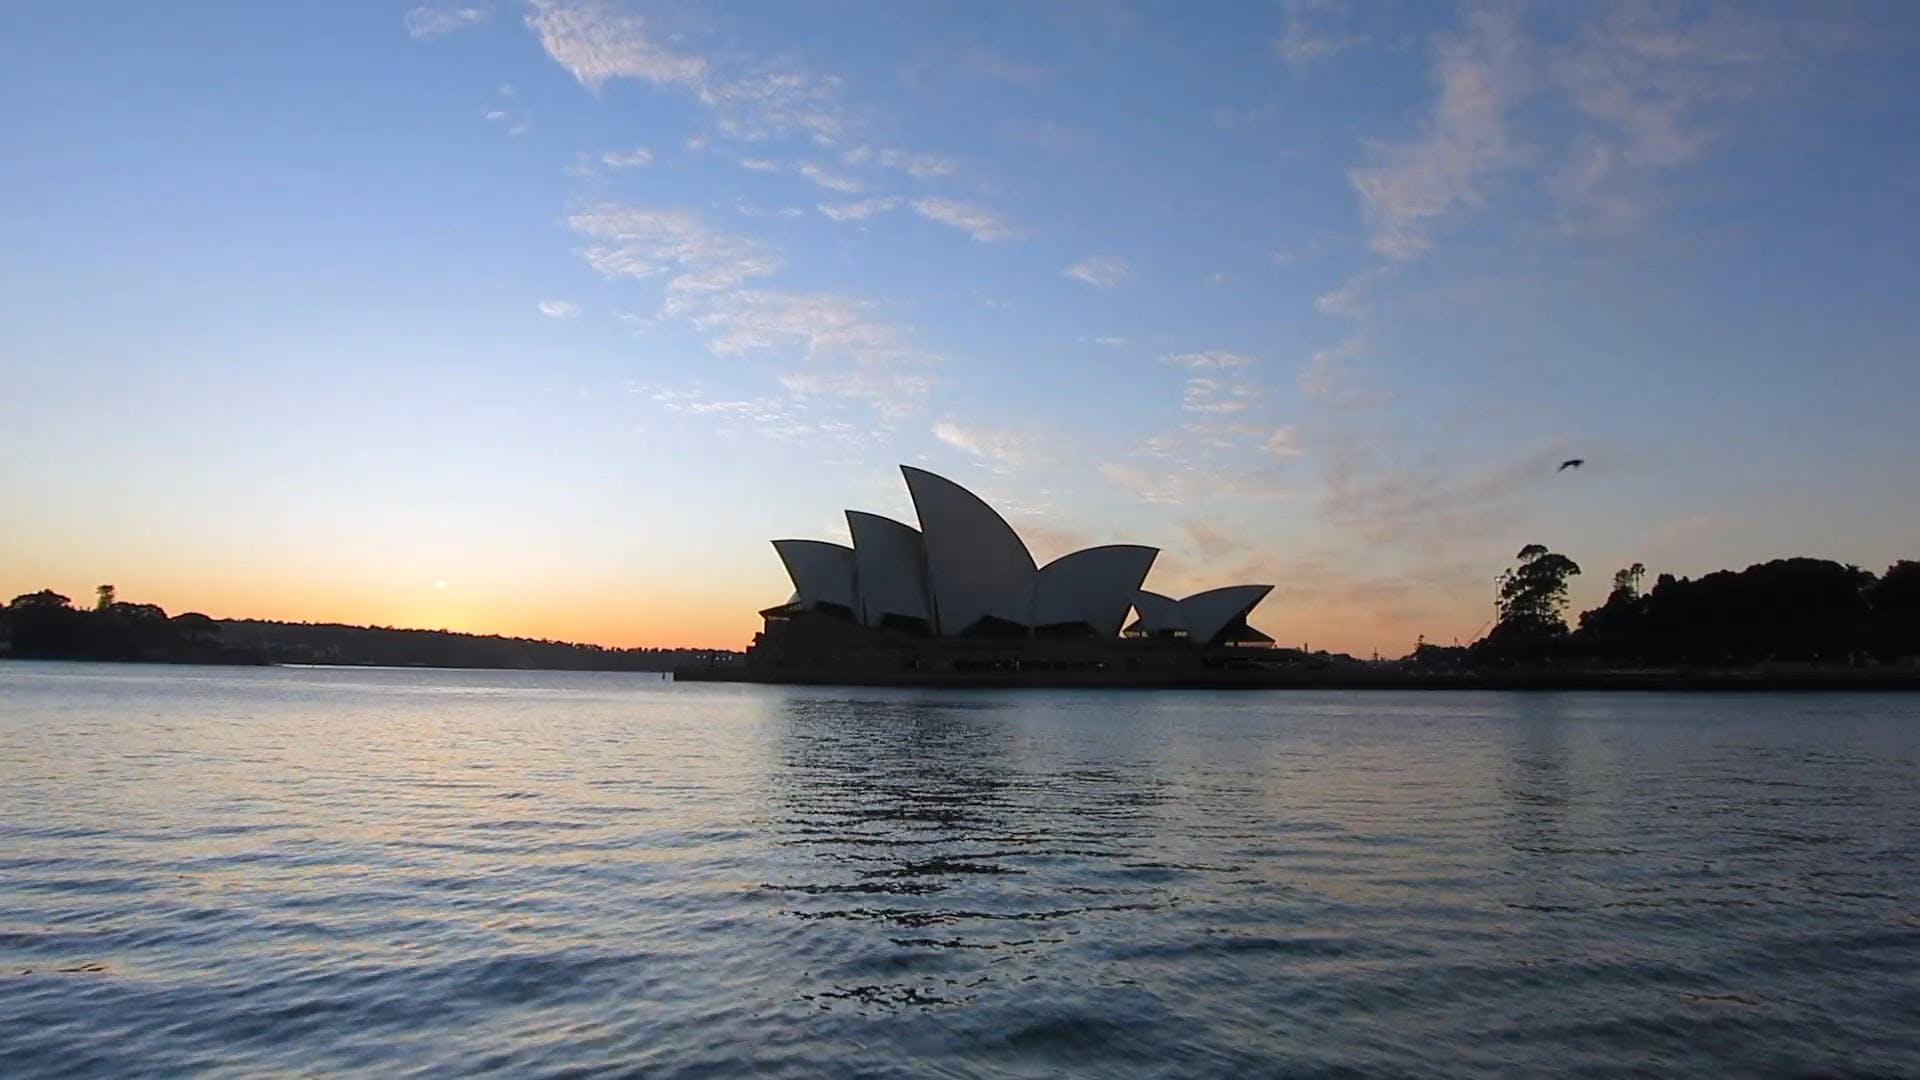 Sunrise Timelapse in Sydney